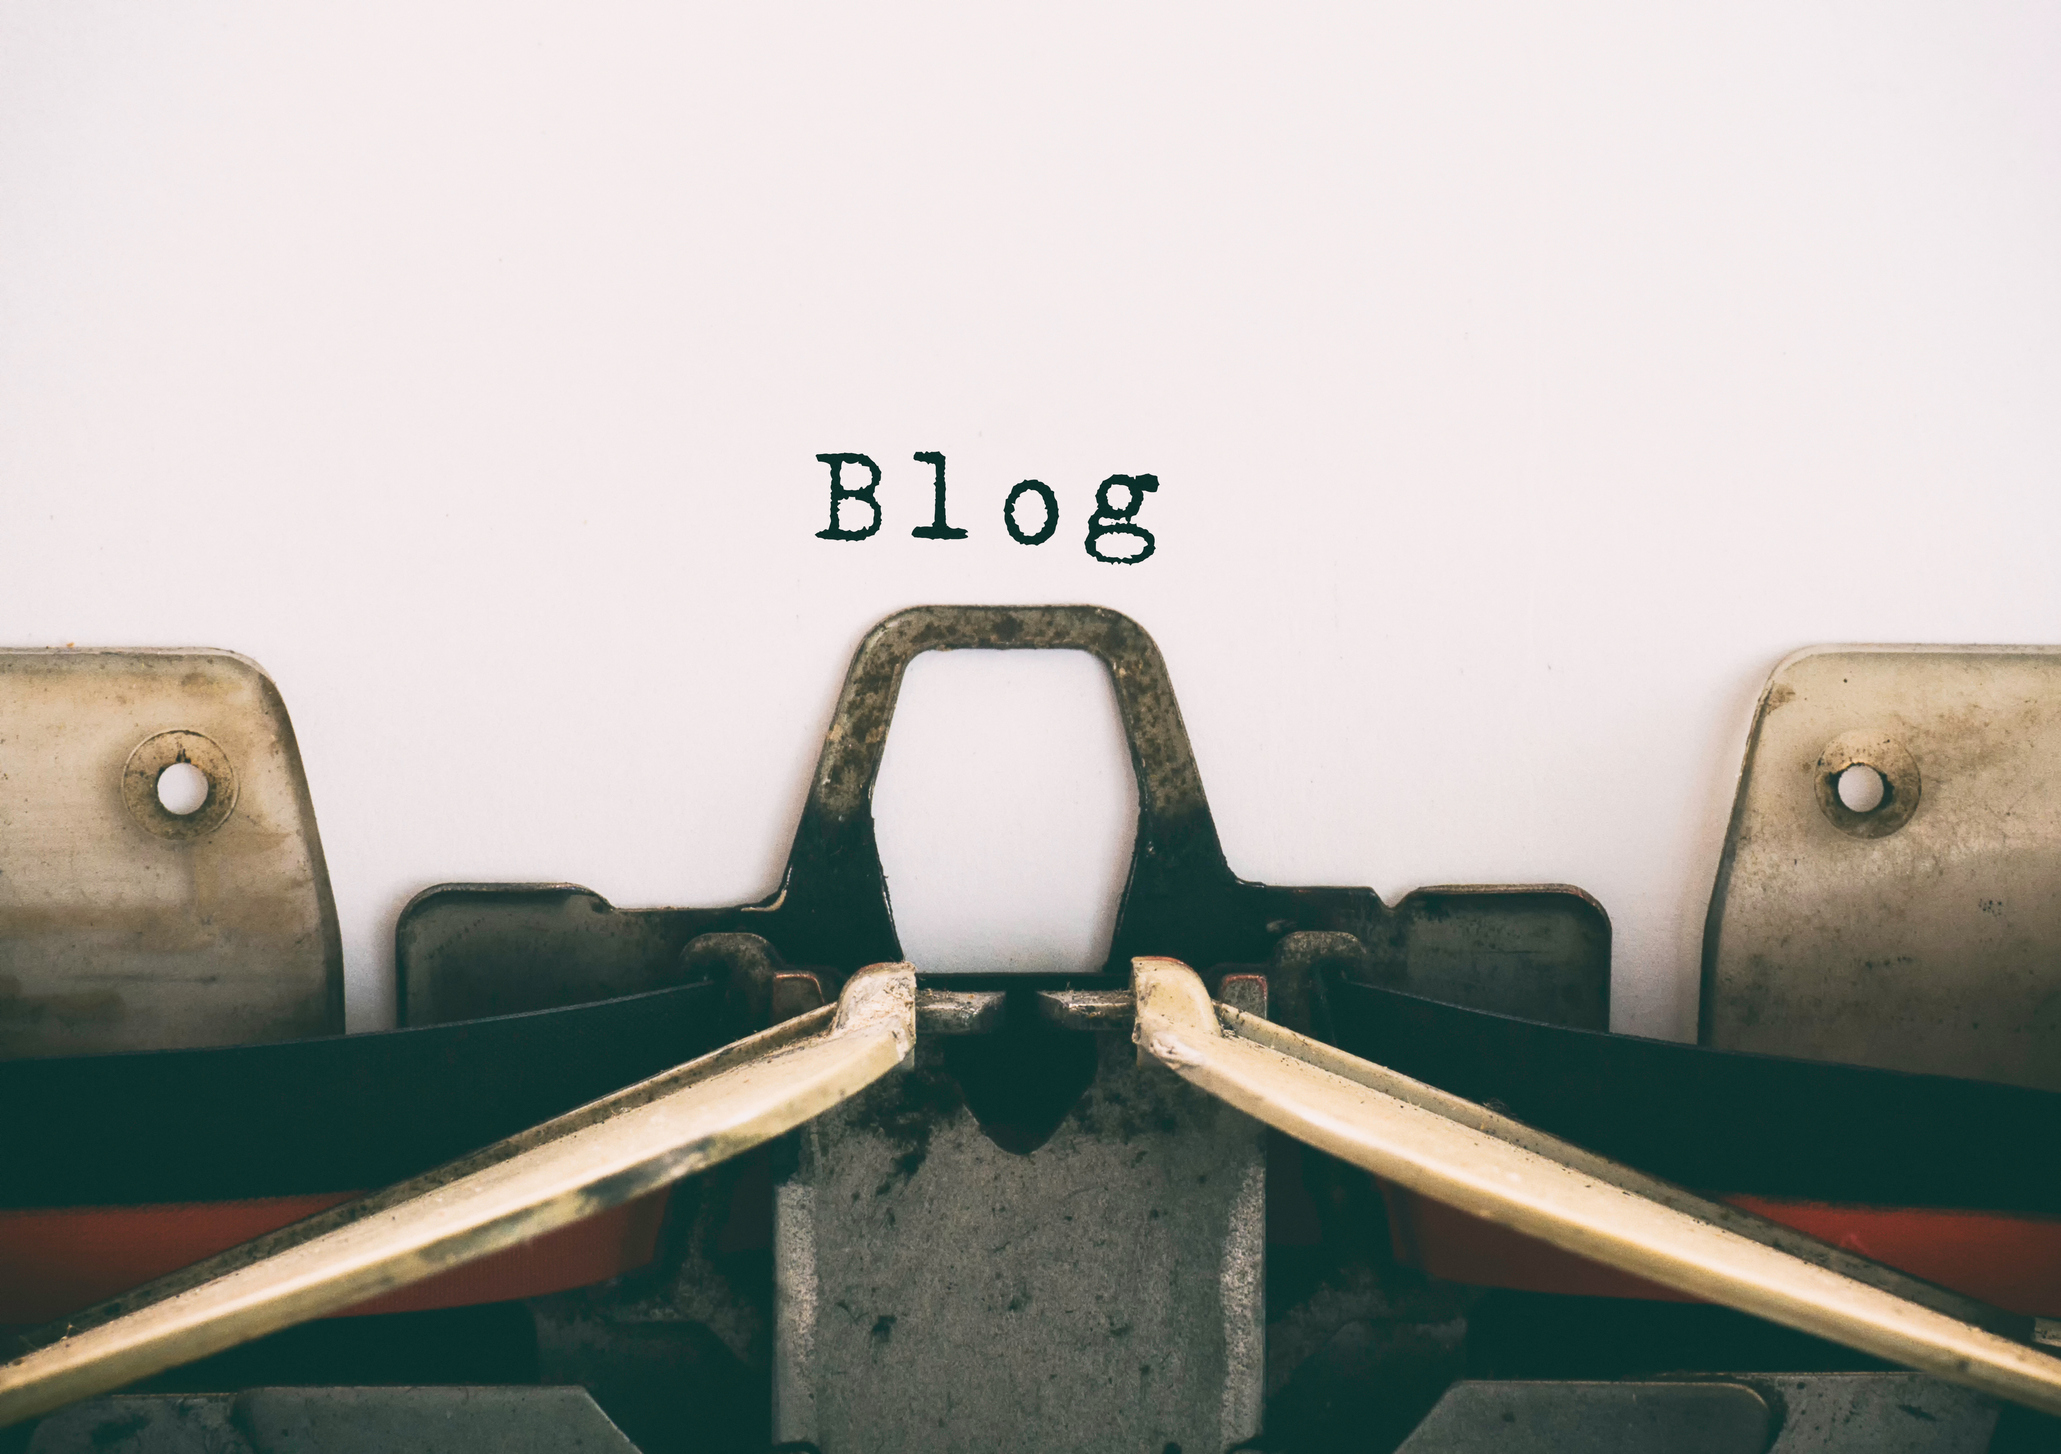 The history of words like 'blog' is humorous and comic